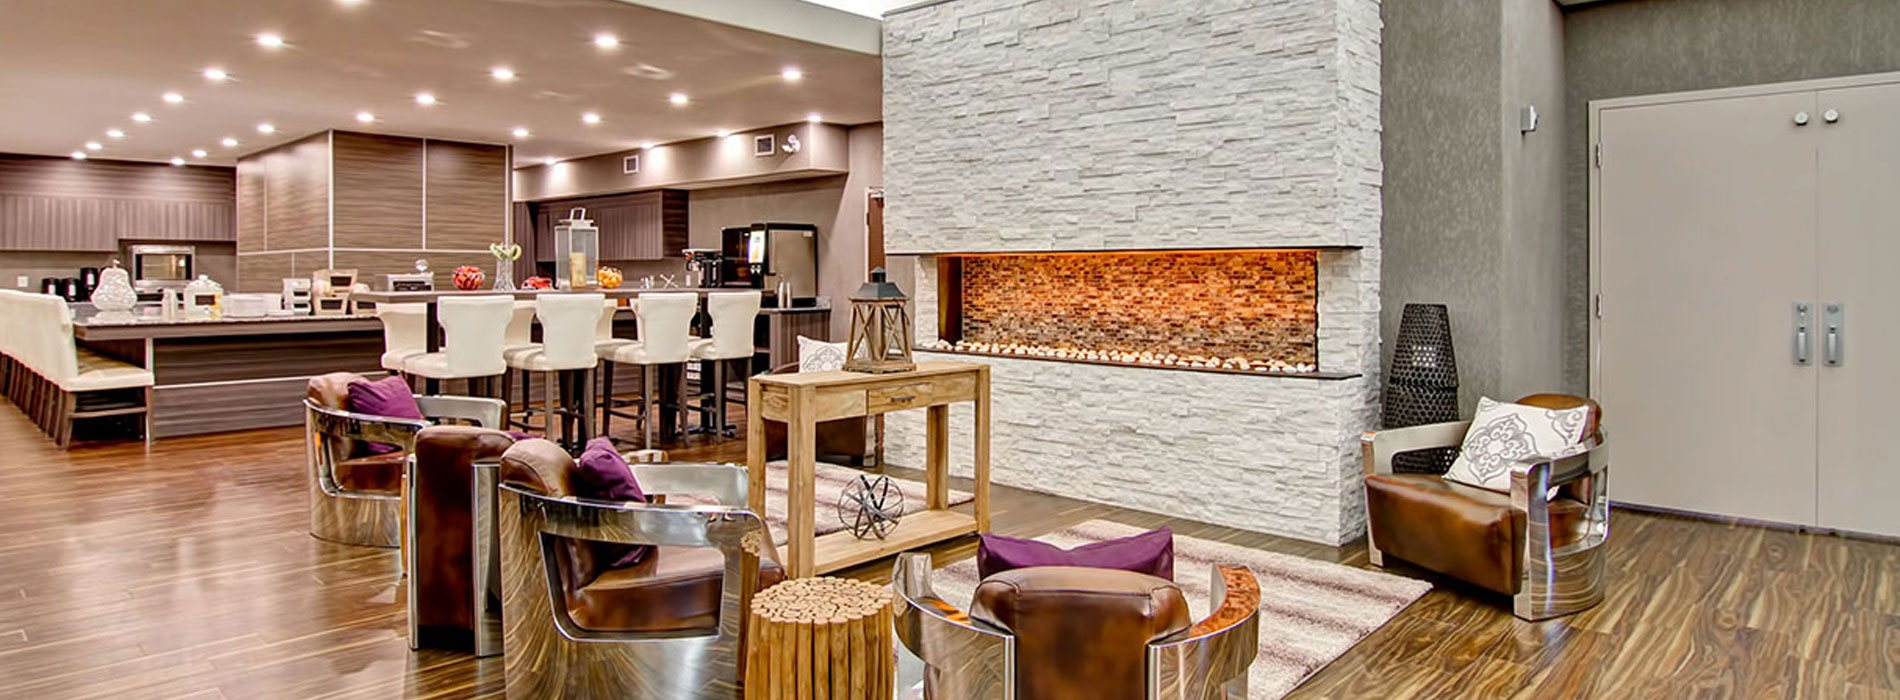 A towering birch white limestone electric fireplace is surrounded by leather club chairs, tree stump side tables, area rugs and a rustic console table bearing metal and wood décor items in the lounging space at d3h Home Inn & Suites Swift Current.  In the background, the wood grain laminate interior of the breakfast area can be seen among neat rows of white upholstered Parsons dining chairs.